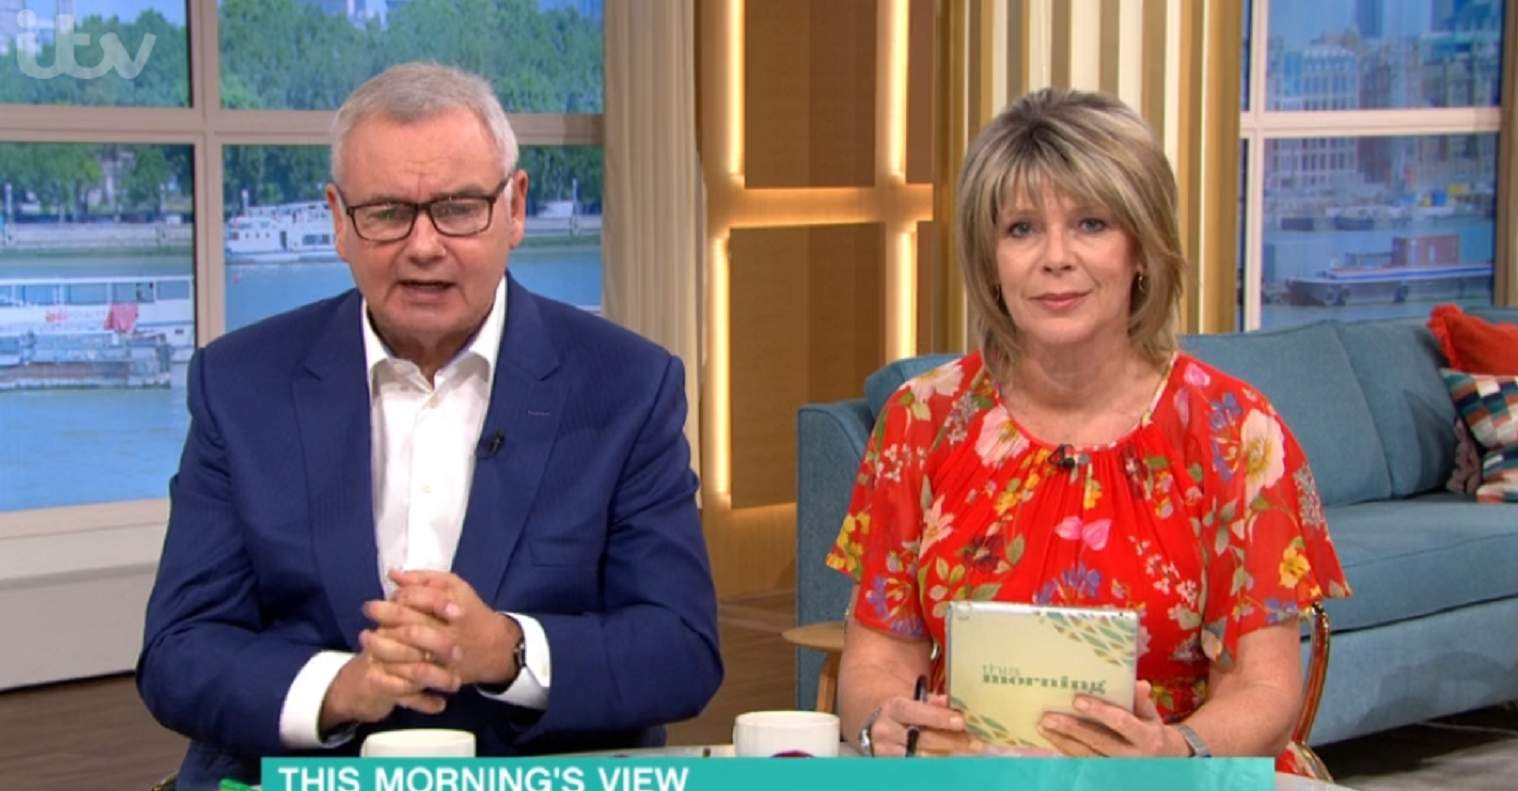 This Morning viewers slam Ruth Langsford for suggesting some Brits see furlough as 'one big summer holiday'